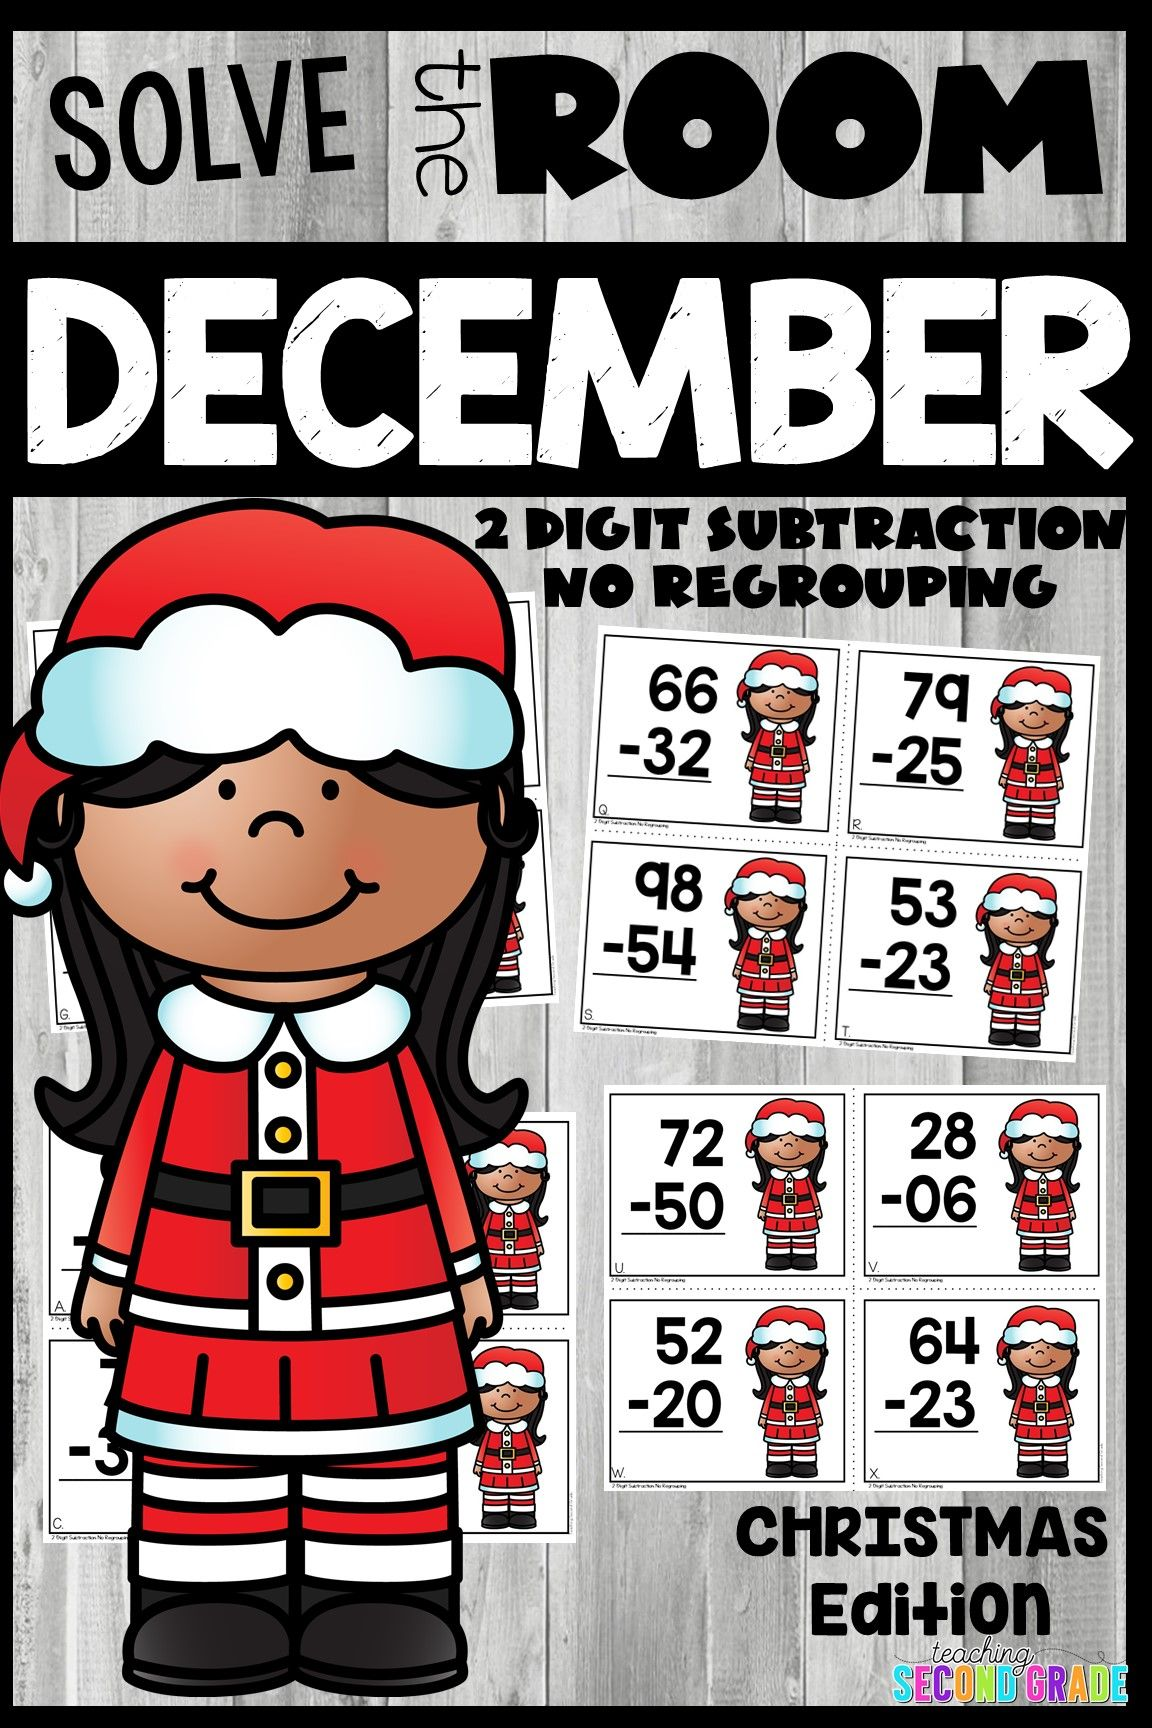 2 Digit Subtraction Without Regrouping Christmas